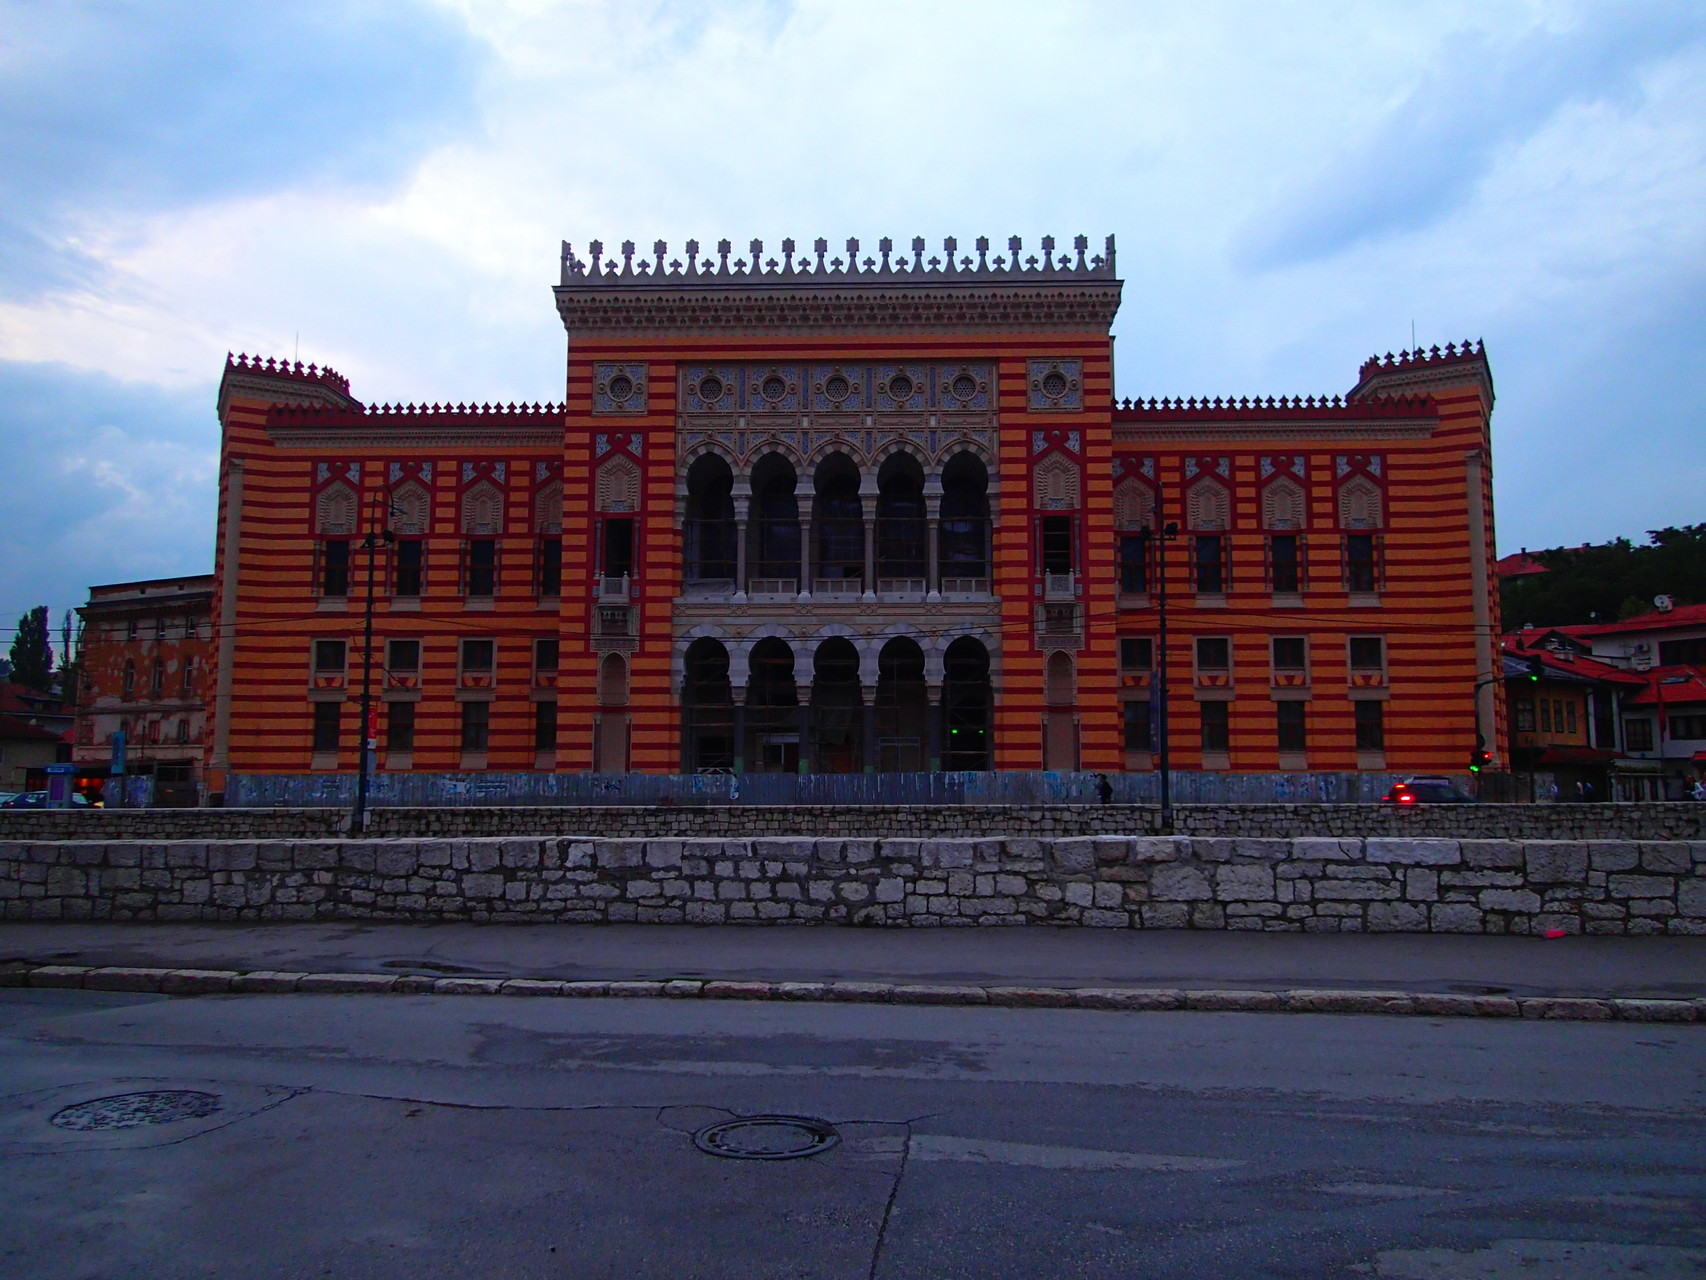 Vijecnica: The facade has been reconstructed